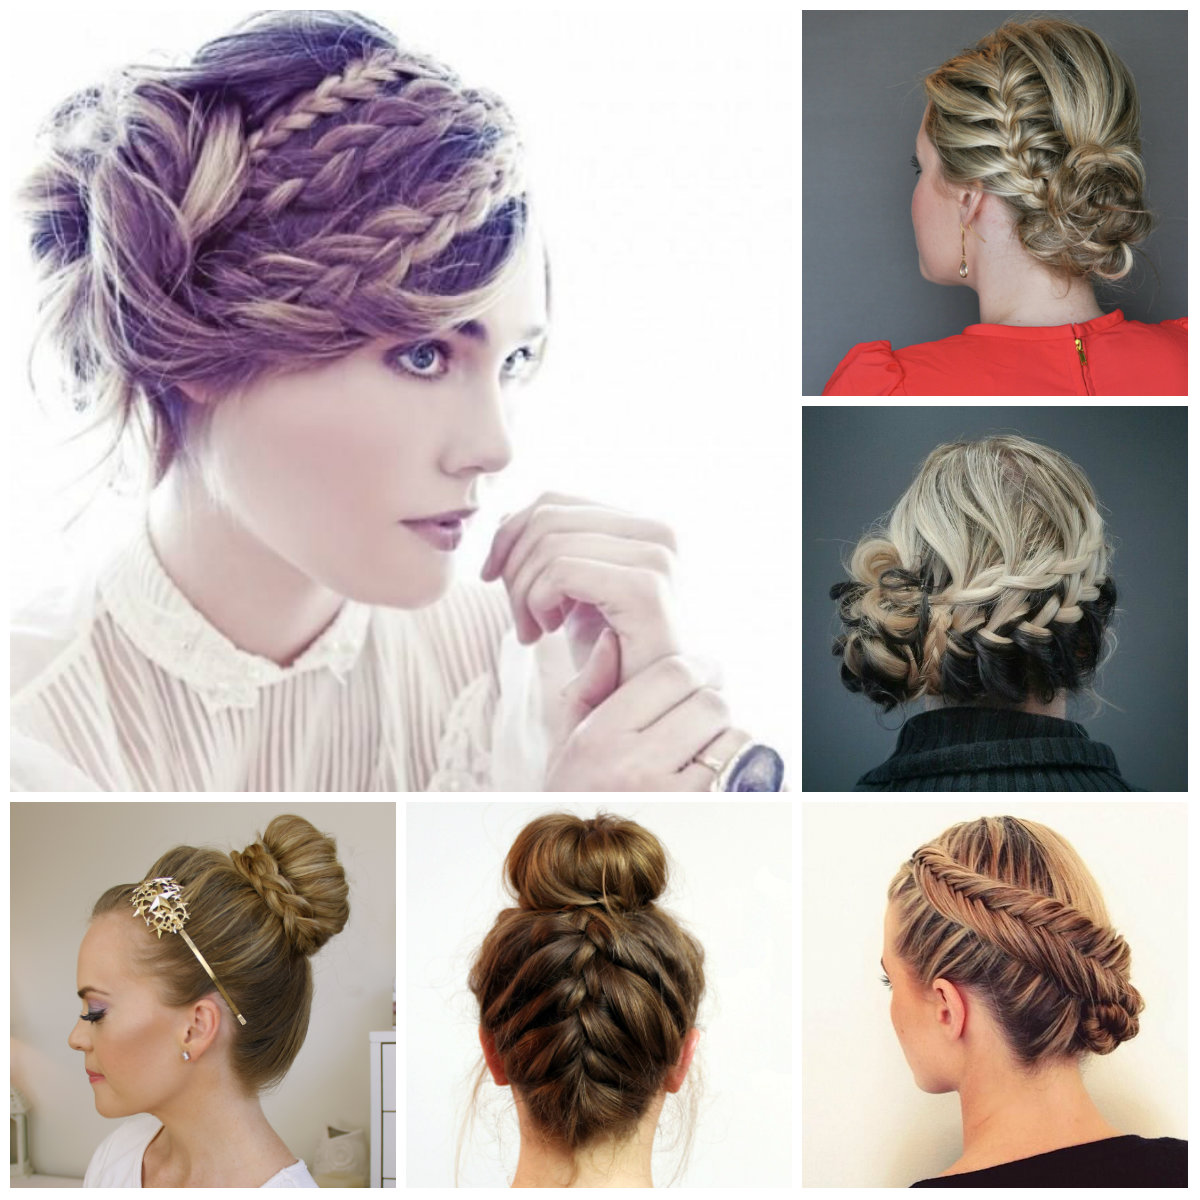 Swell Coolest Braided Updo Hairstyles 2016 2017 Haircuts Hairstyles Hairstyles For Men Maxibearus